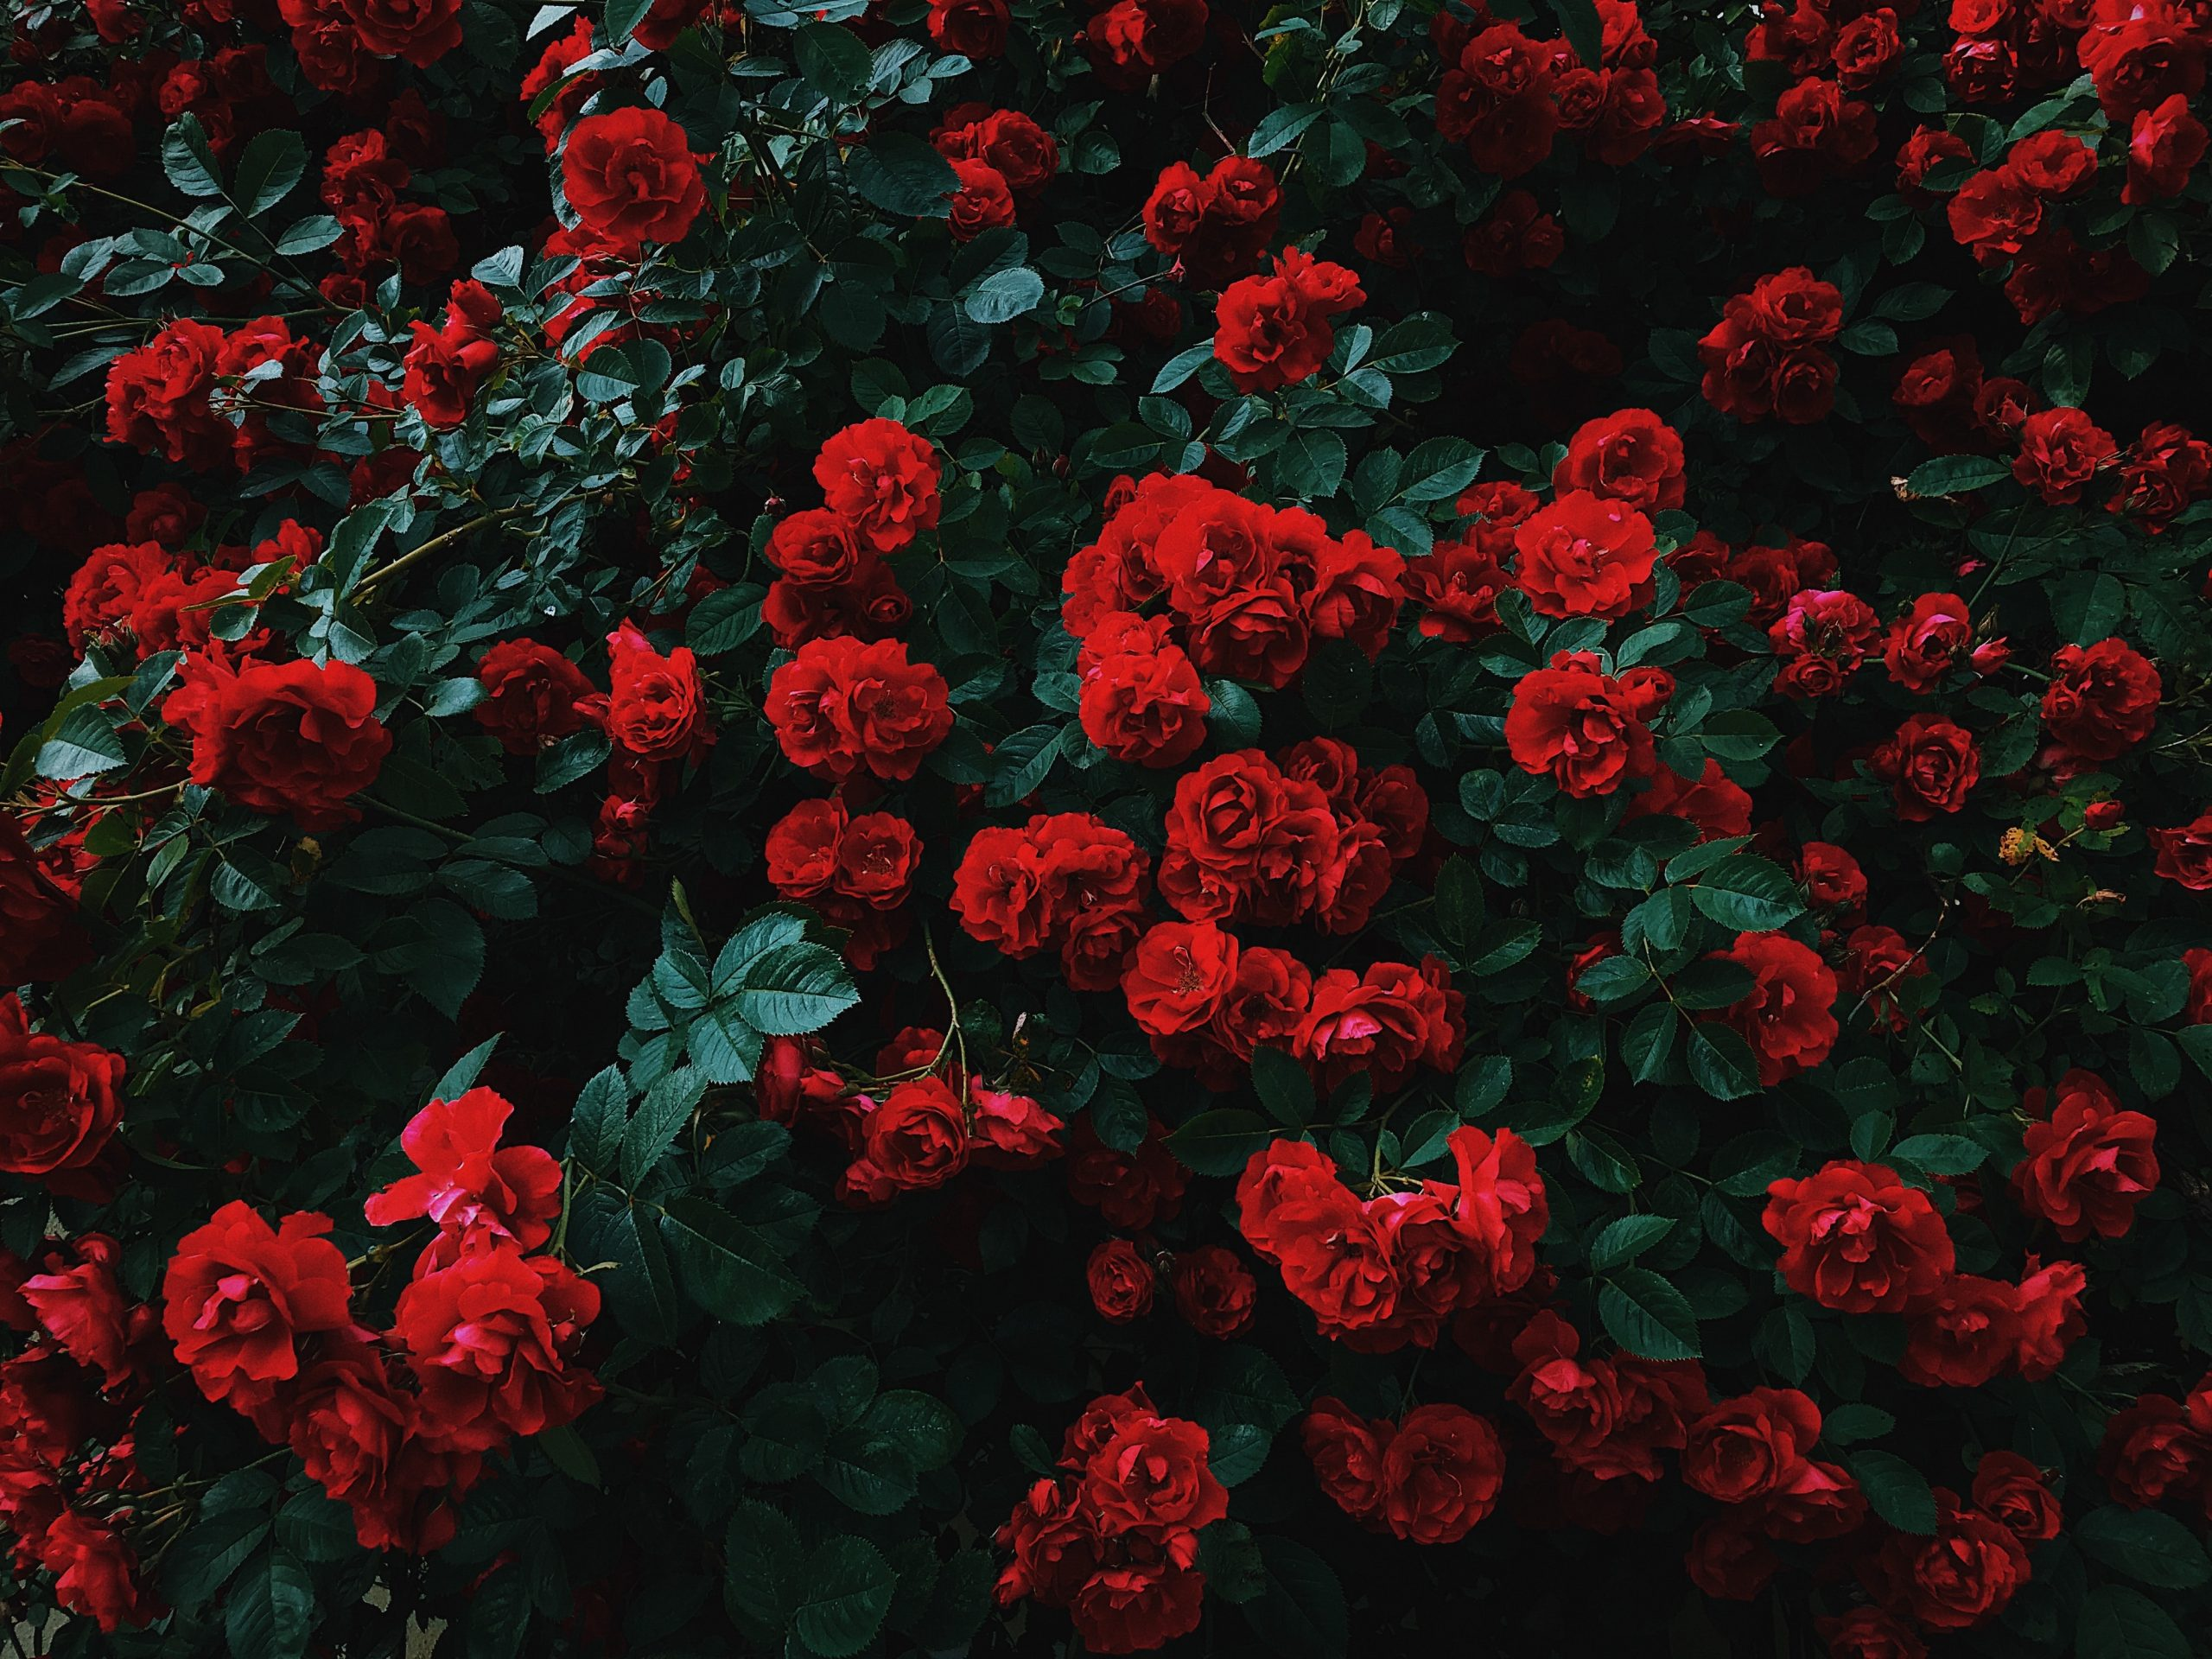 Roses to Smell